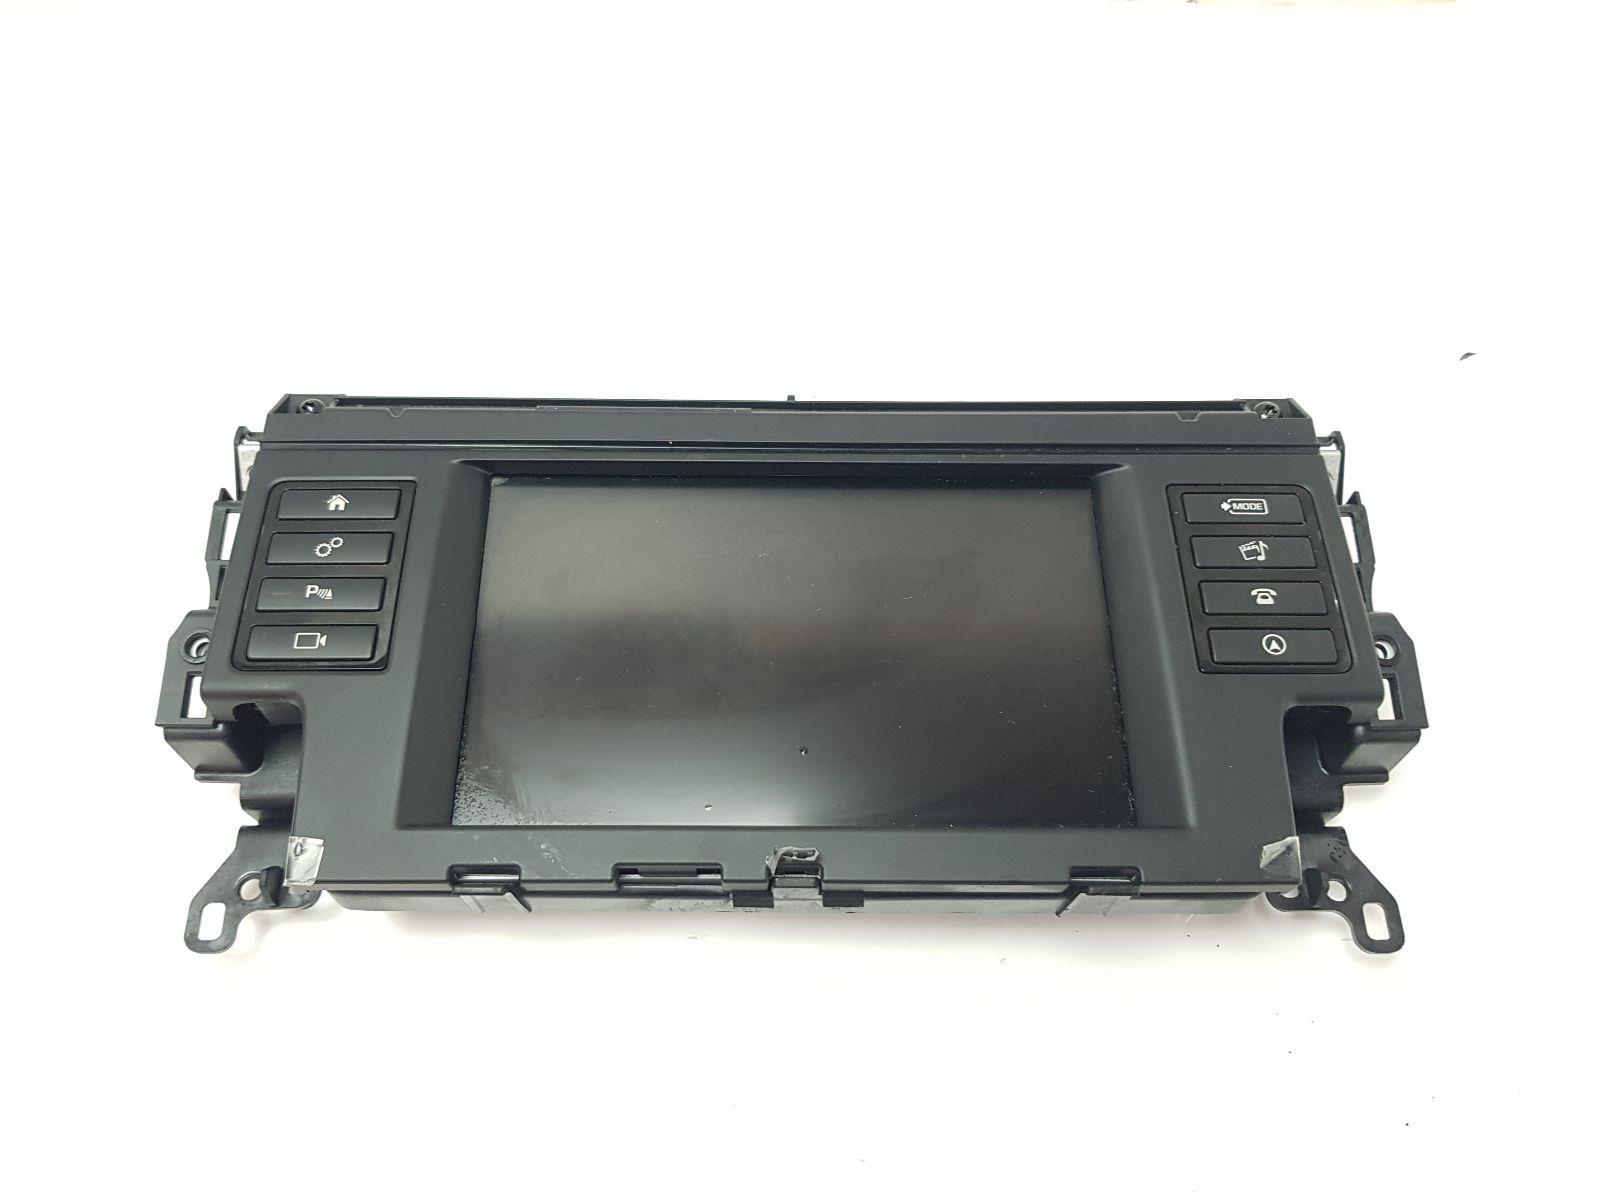 2015-2019 L550 Land Rover Discovery Sport SAT NAV MULTI FUNCTION DISPLAY SCREEN